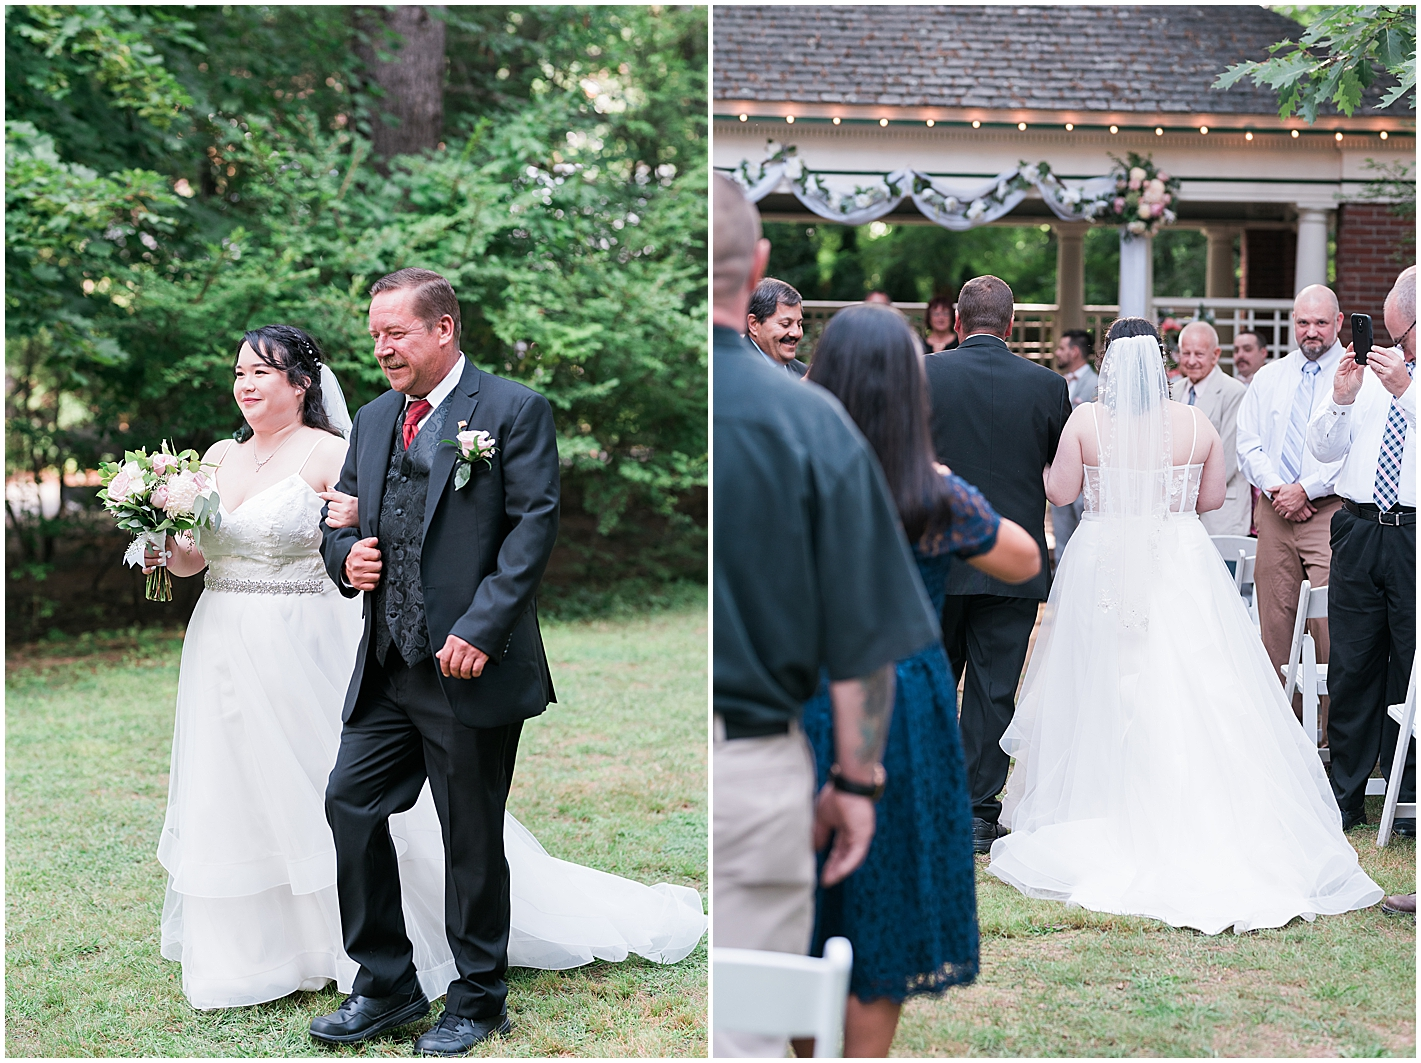 Outdoor Ceremony at Governors Inn Rochester New Hampshire Photo by Alyssa Parker Photography